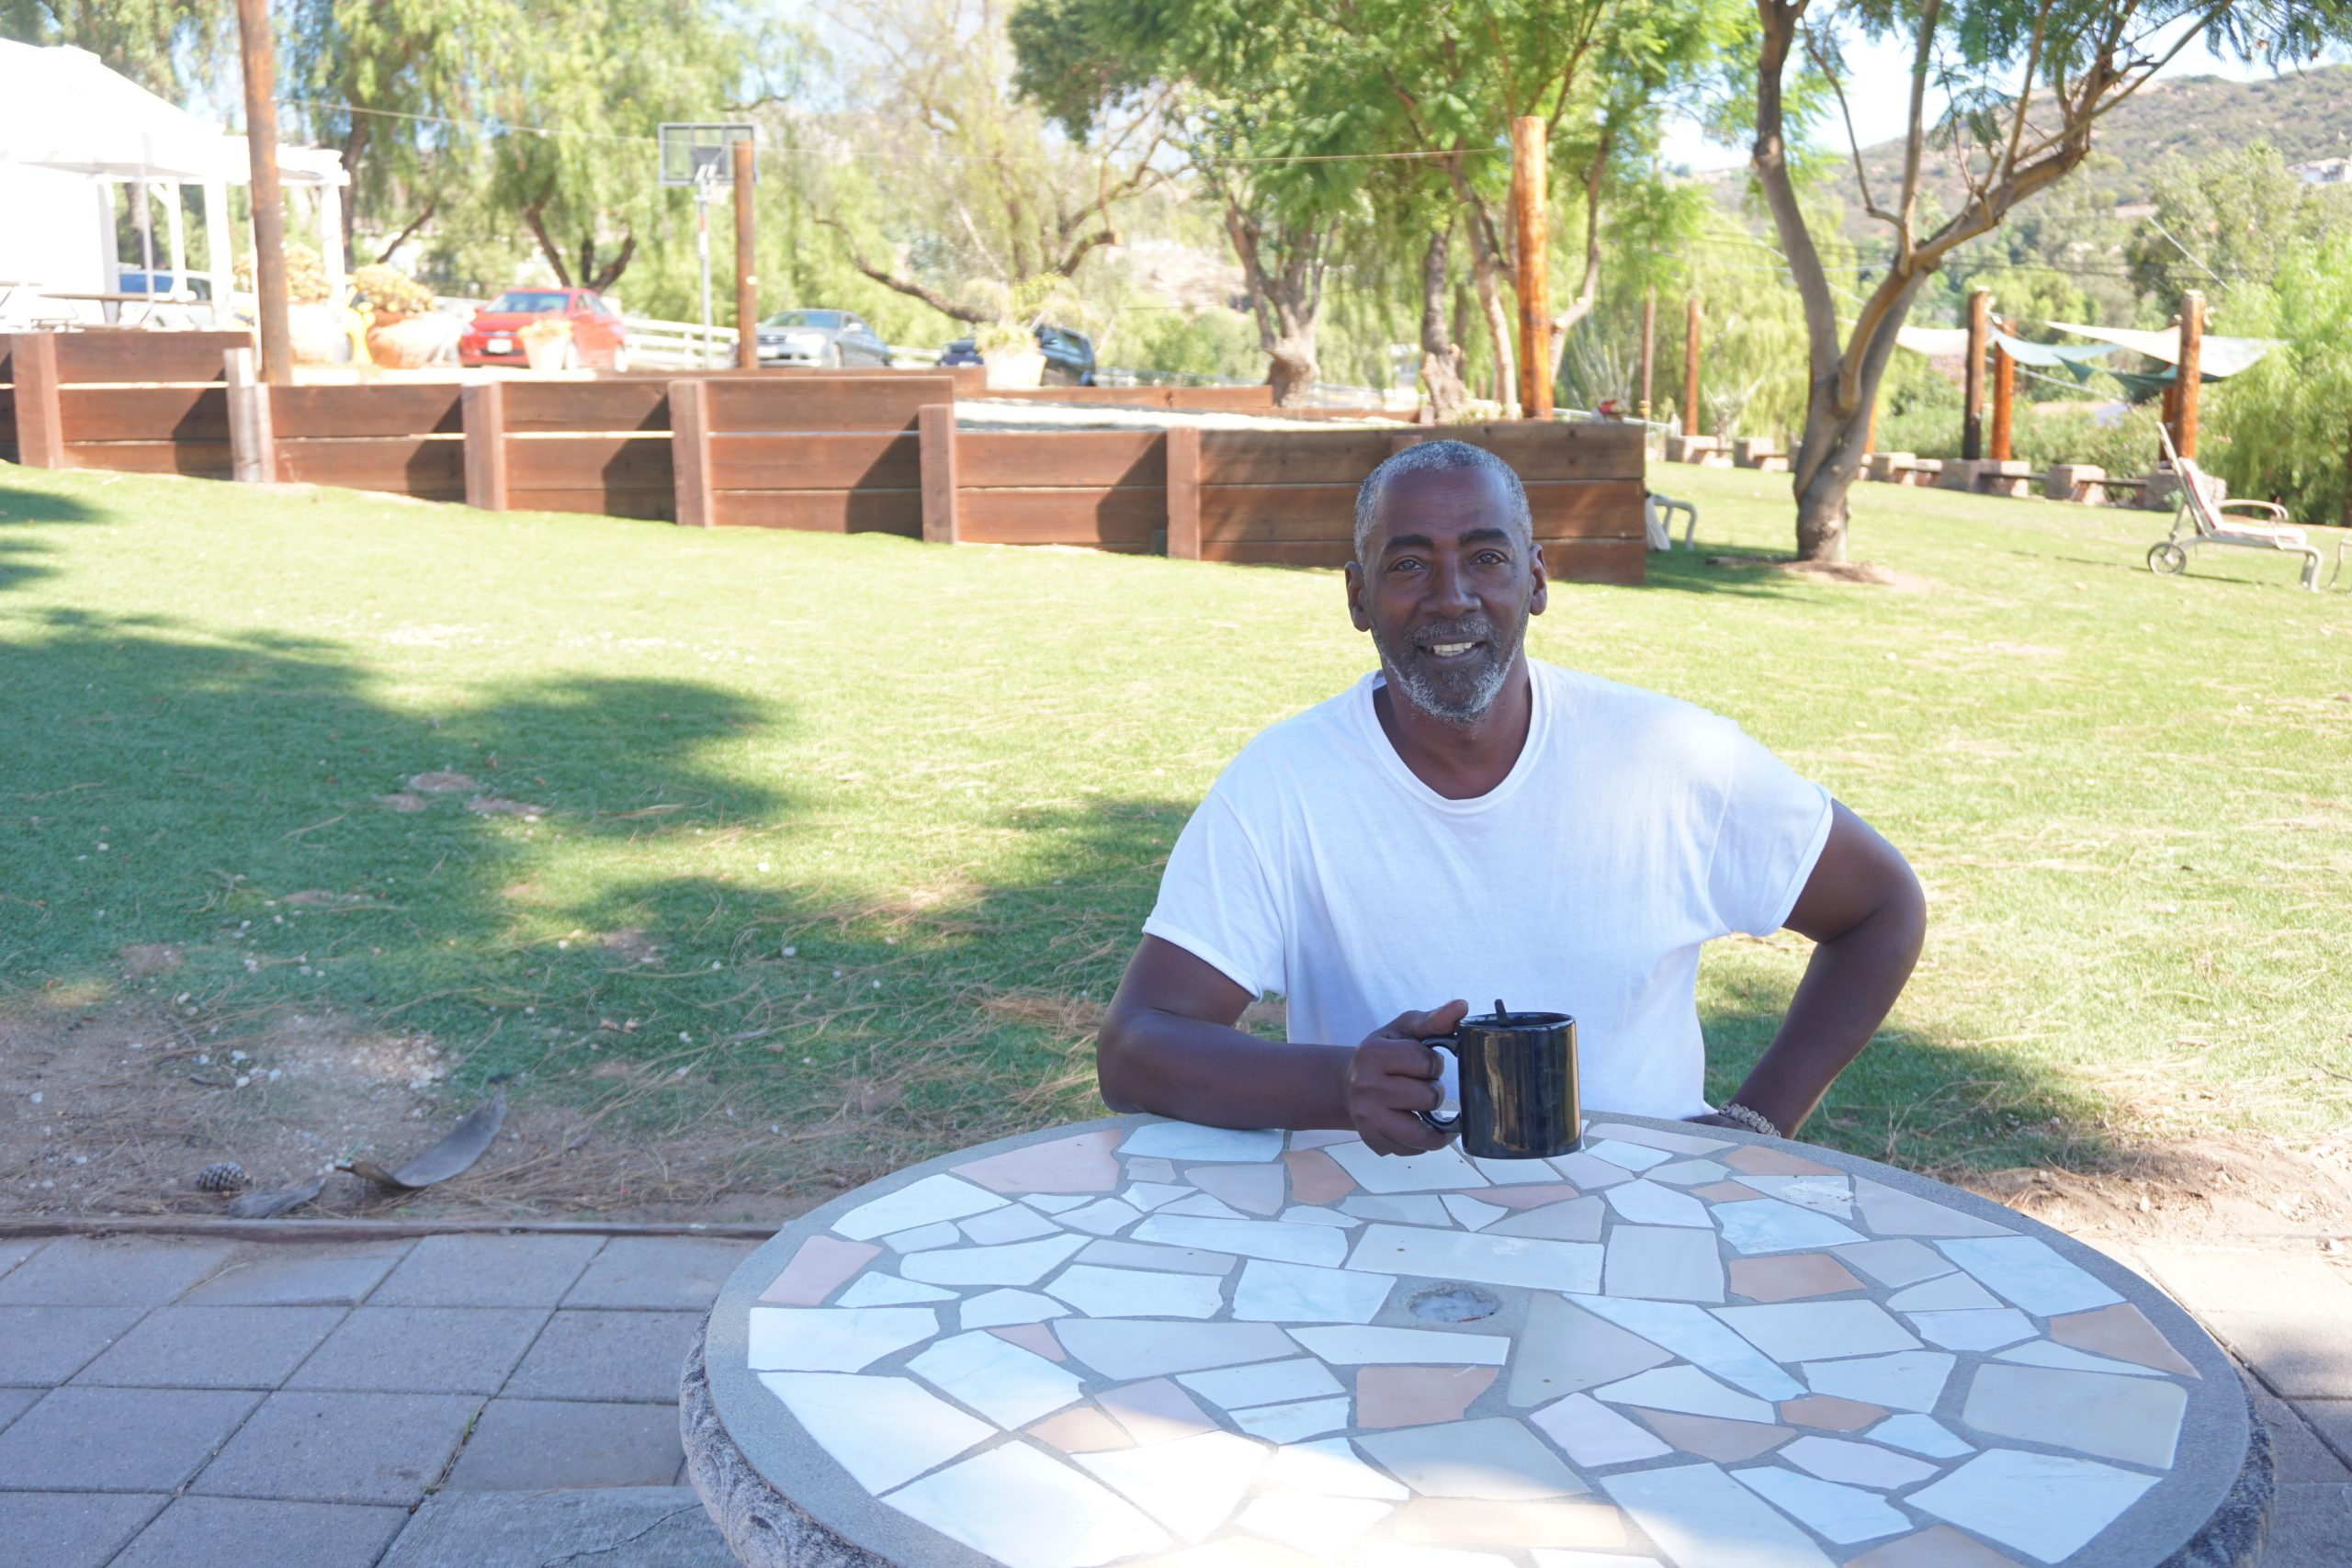 A man in a white shirt, sitting outside in the shade at a table smiling and holding a coffee cup. He is a part of what makes veteran housing communities important and successful.